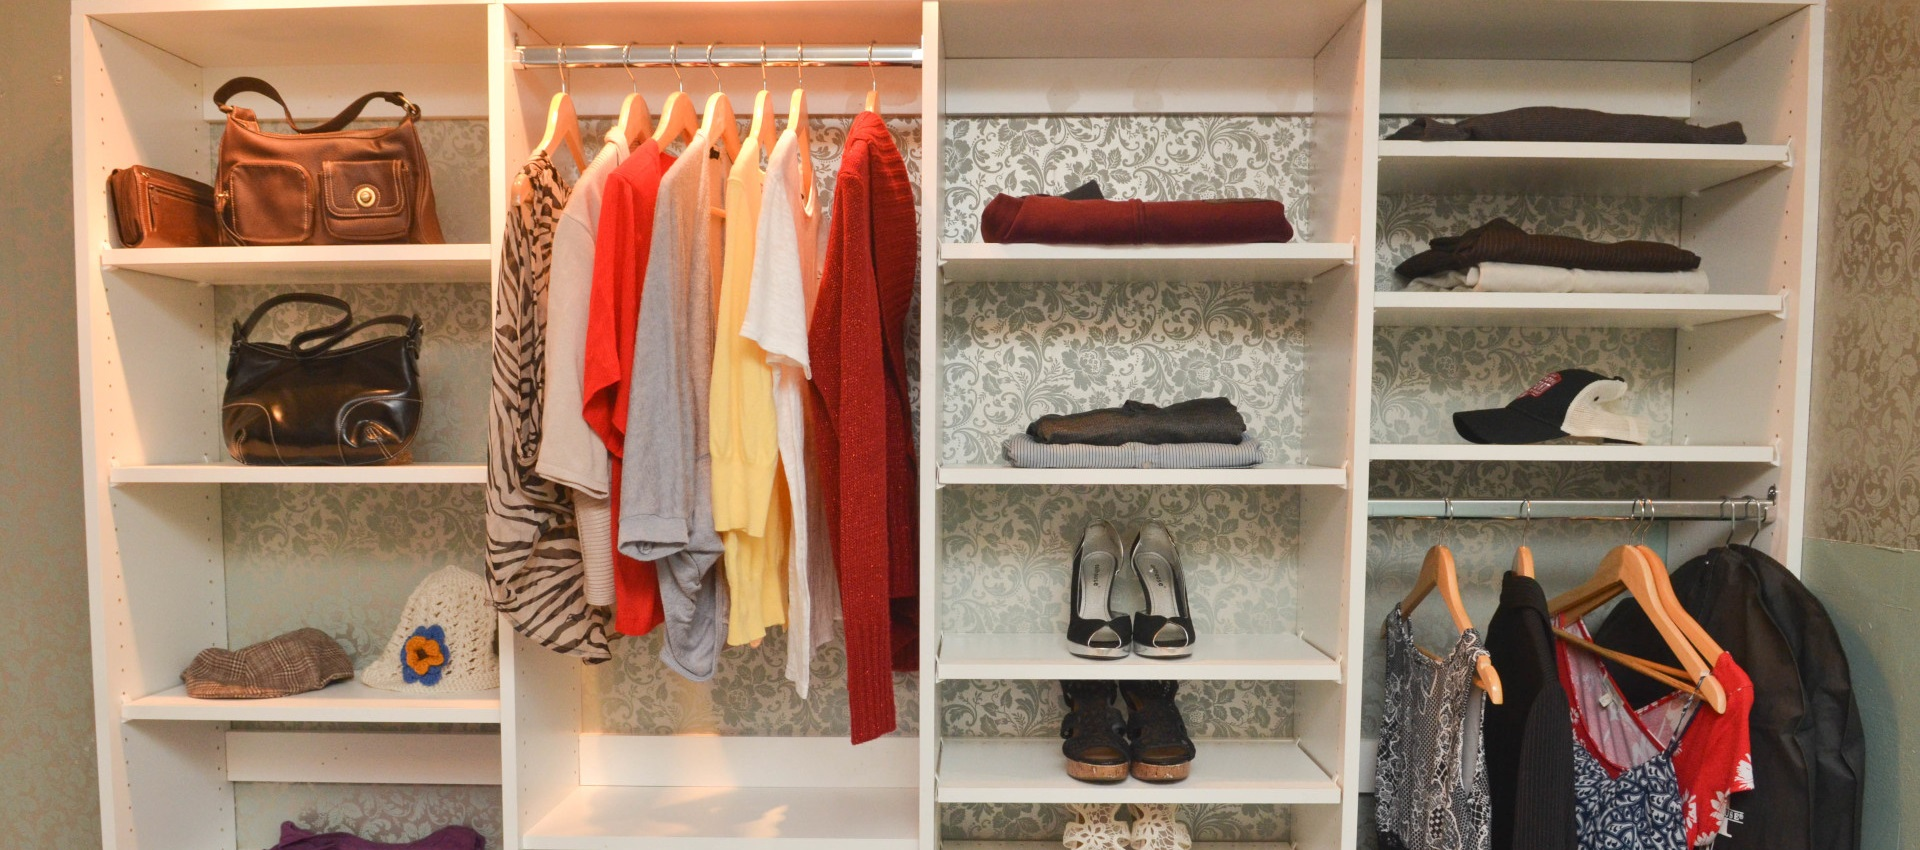 Five Star Closet Company - Closet organization systems Sacramento Folsom Rocklin Closet Organization Systems Installation Sacramento Folsom Rocklin CA